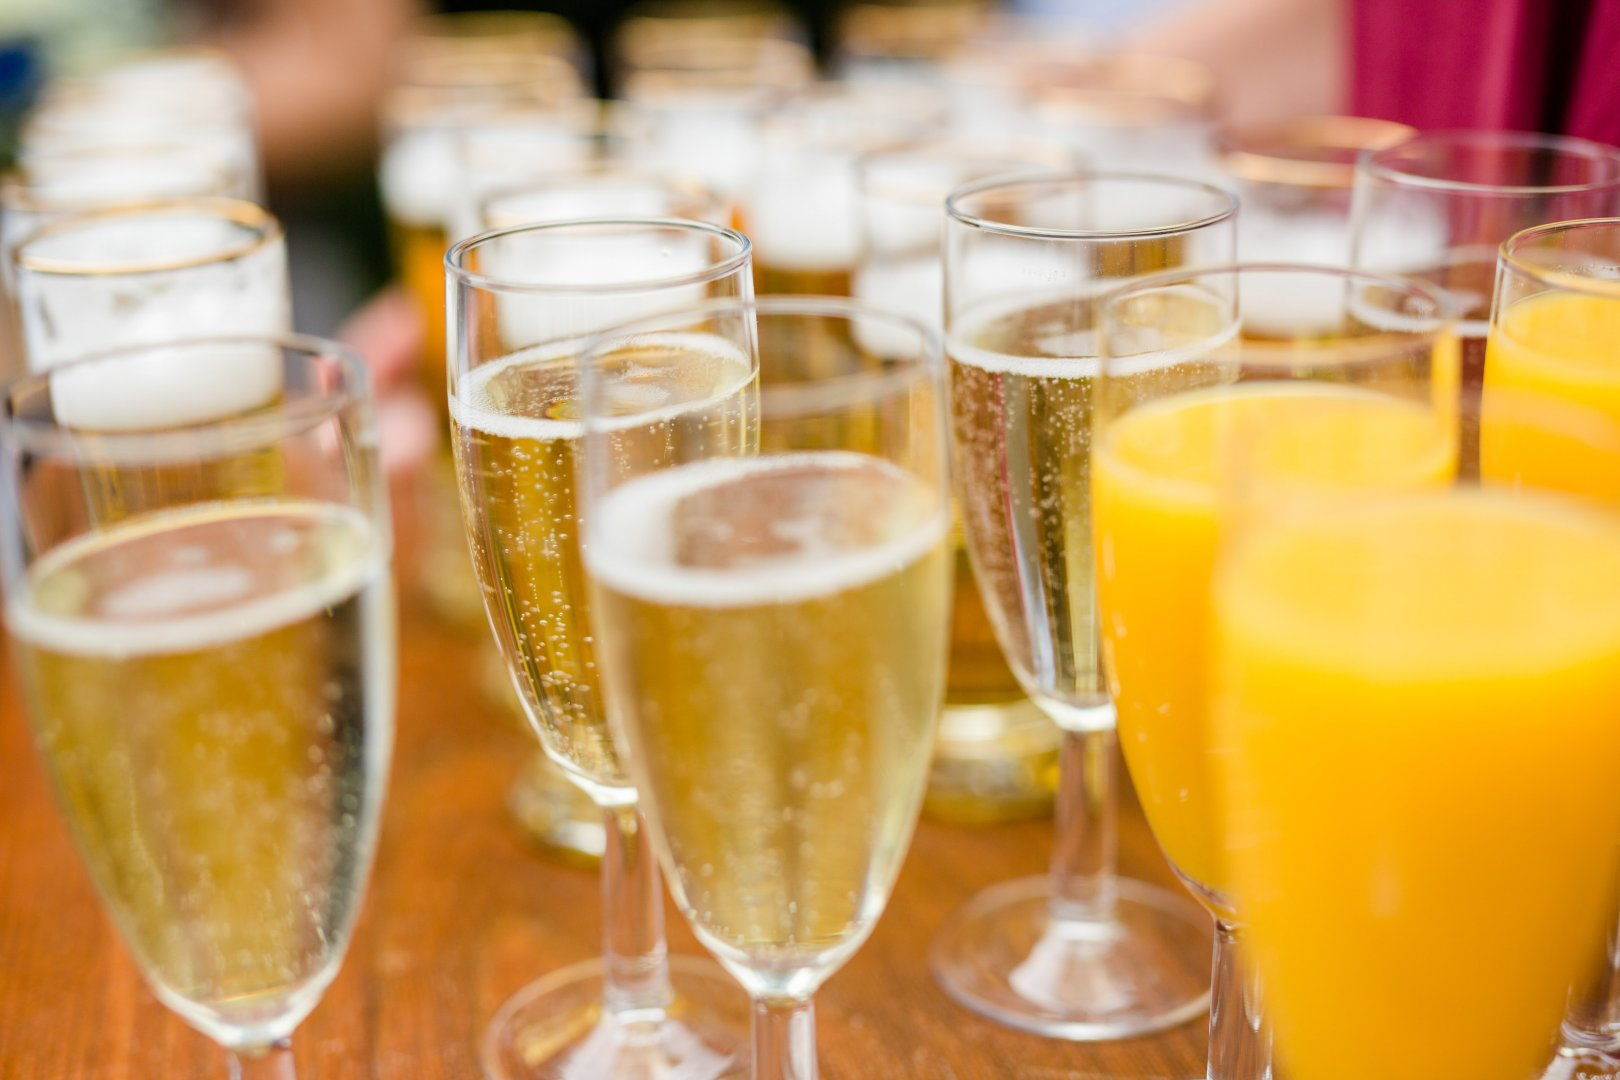 Champagne cocktail Drink Alcoholic beverage Juice Champagne Beer glass Champagne stemware Cocktail Distilled beverage Wine Beer cocktail Sparkling wine Non-alcoholic beverage Spritzer Cider Food Beer Mimosa Wine cocktail Apéritif Alcohol Fizz Punch French 75 Bellini Liqueur Lager Ingredient Stemware Drinkware